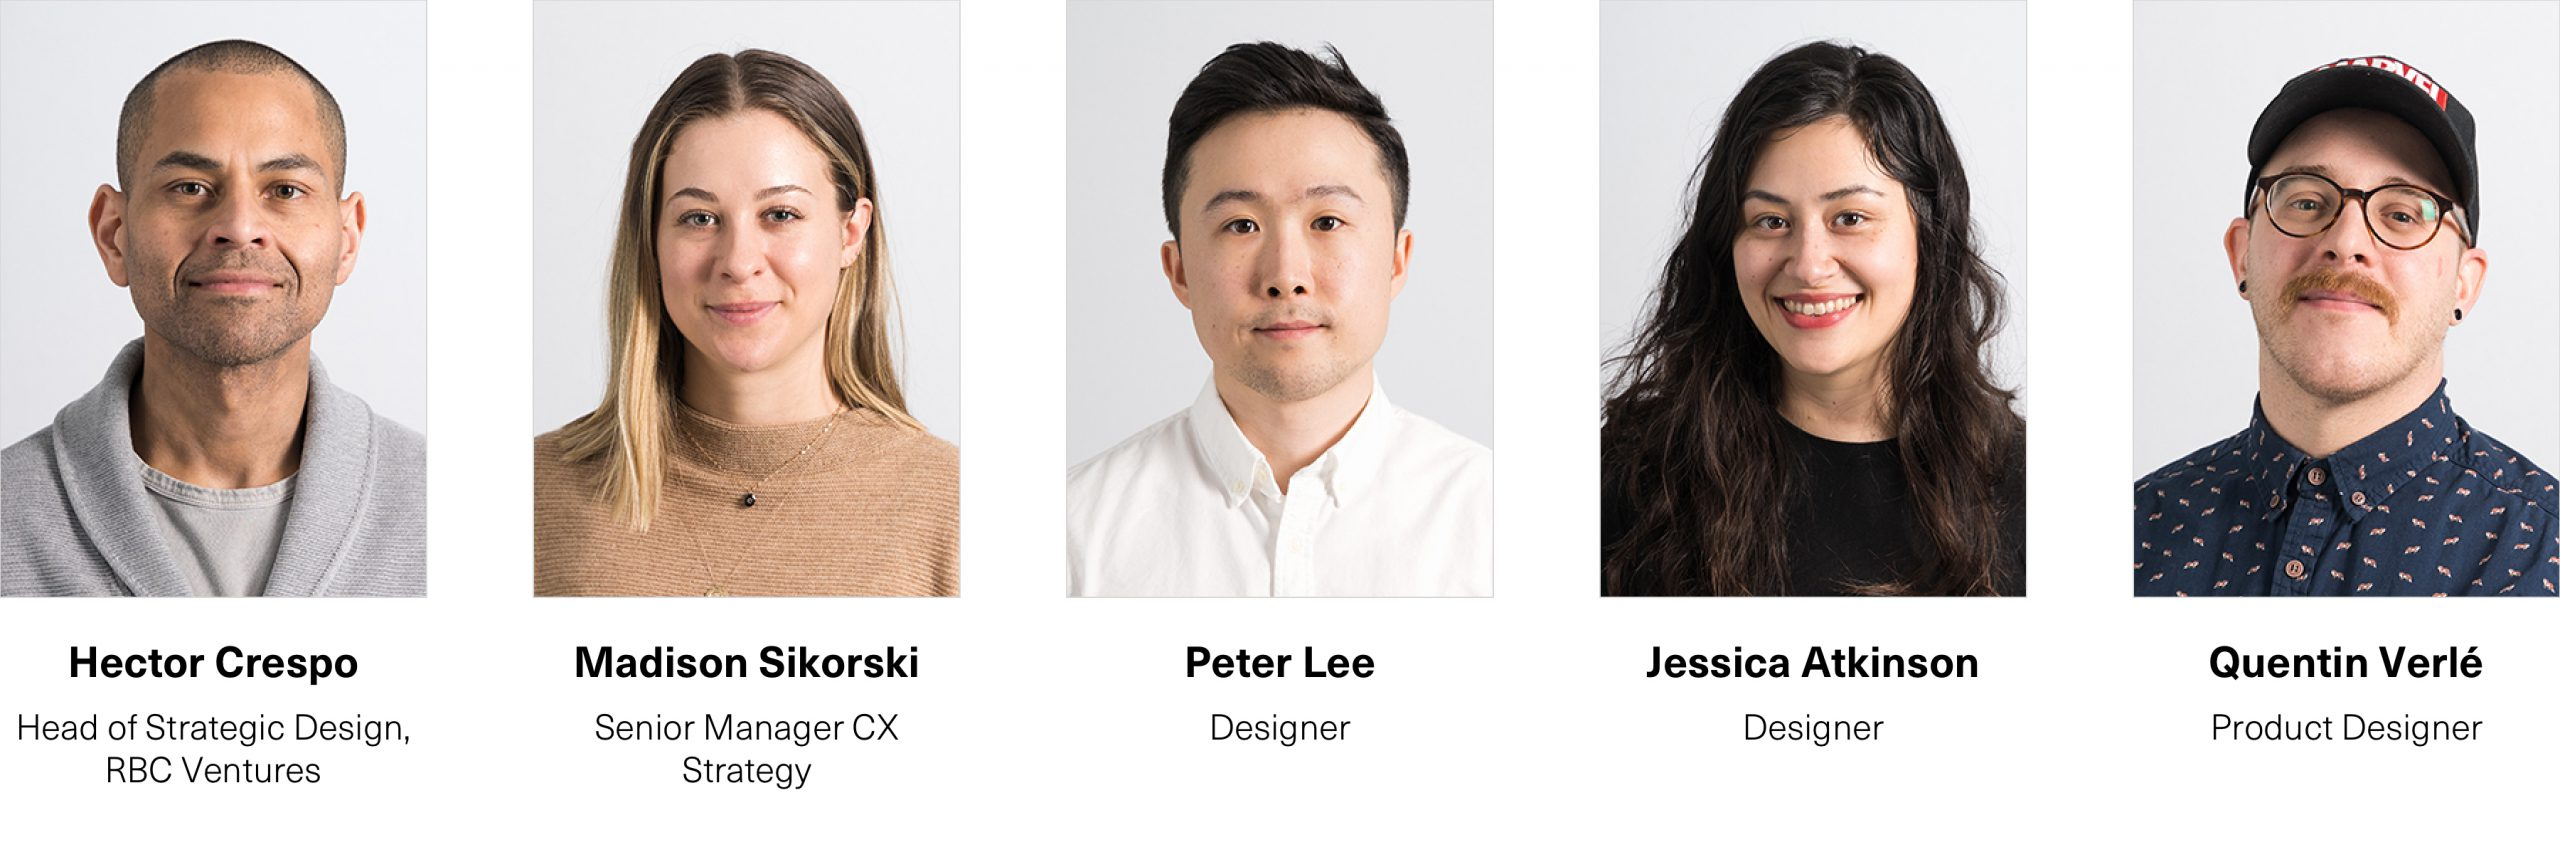 RBC Ventures, Strategic Design team: Hector Crespo, Madison Sikorski, Peter Lee, Jessica Atkinson, and Quentin Verle.